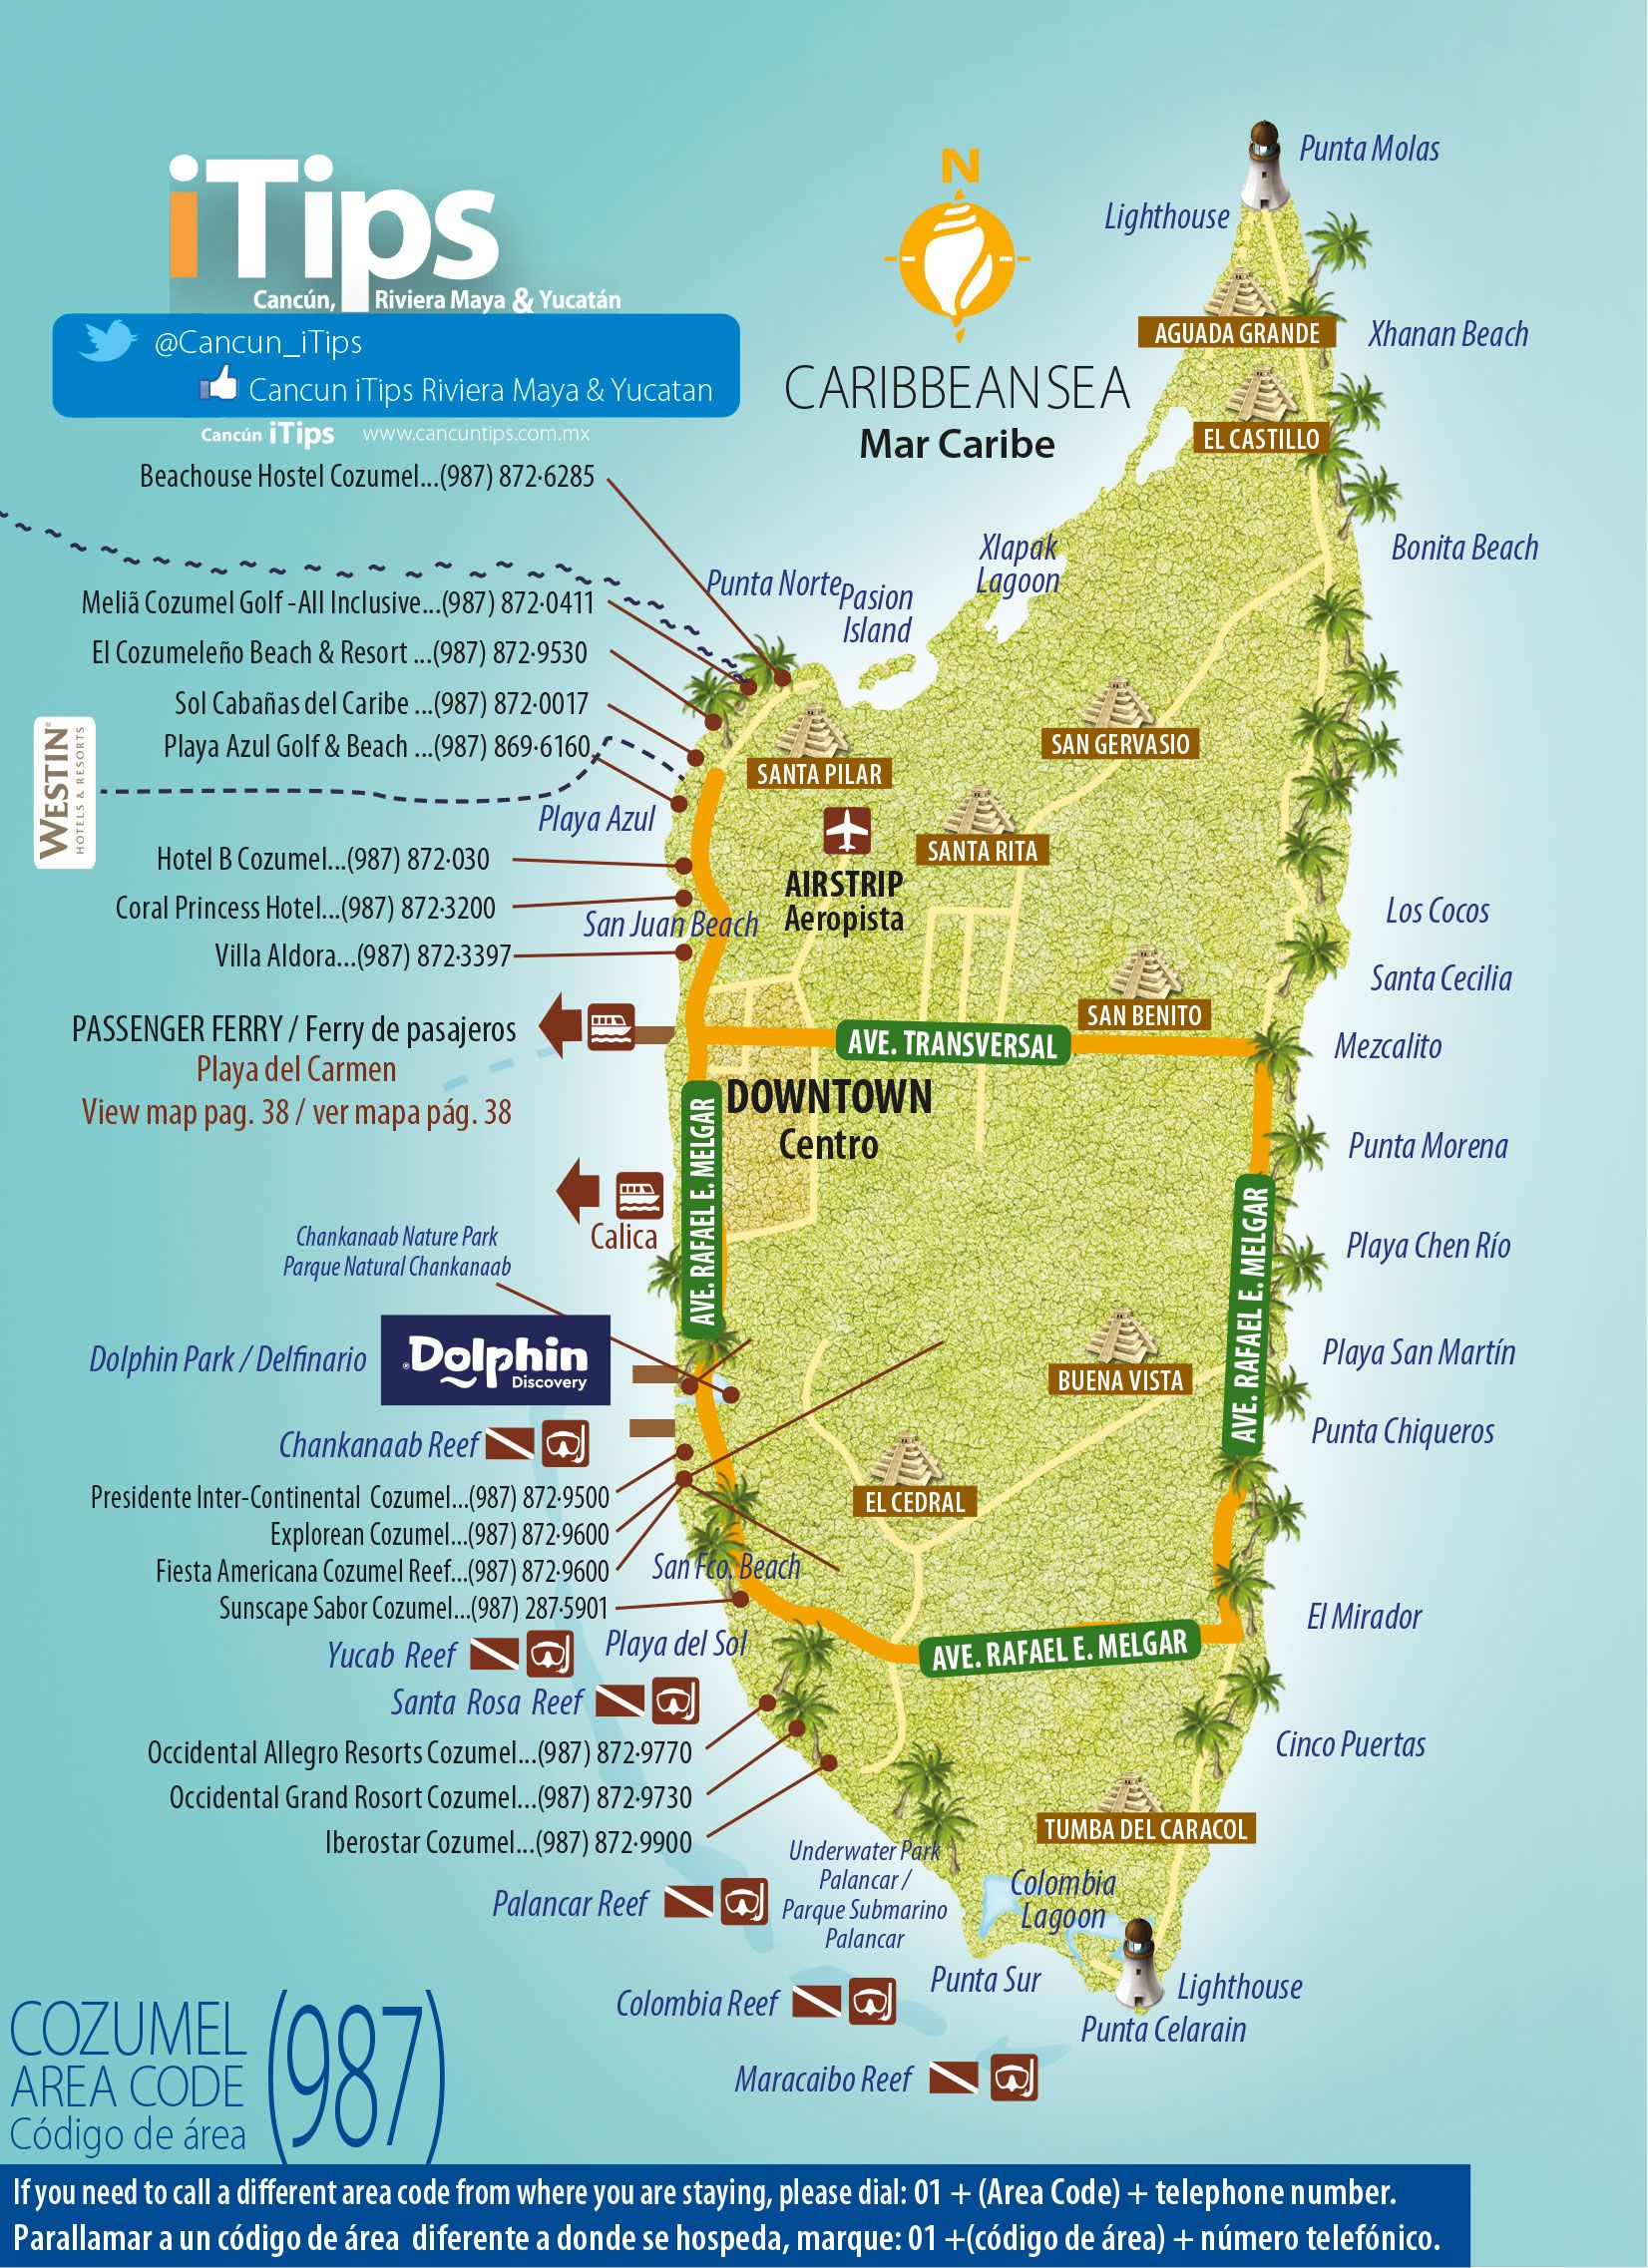 cozumel-map | Rivera Maya in 2019 | Cozumel map, Cozumel ... on map of playa del carmen, map of cancún, map of culiacan, map of belize, map of yaxchilan, map of mexico, map of grand cayman, map of the bay islands, map of jamaica, map of roatan, map of michoacán, map of yucatan, map of puerto rico, map of puerto vallarta, map of puerto aventuras, map of mayreau, map of costa maya, map of riviera maya, map of veracruz, map of bahia de banderas,